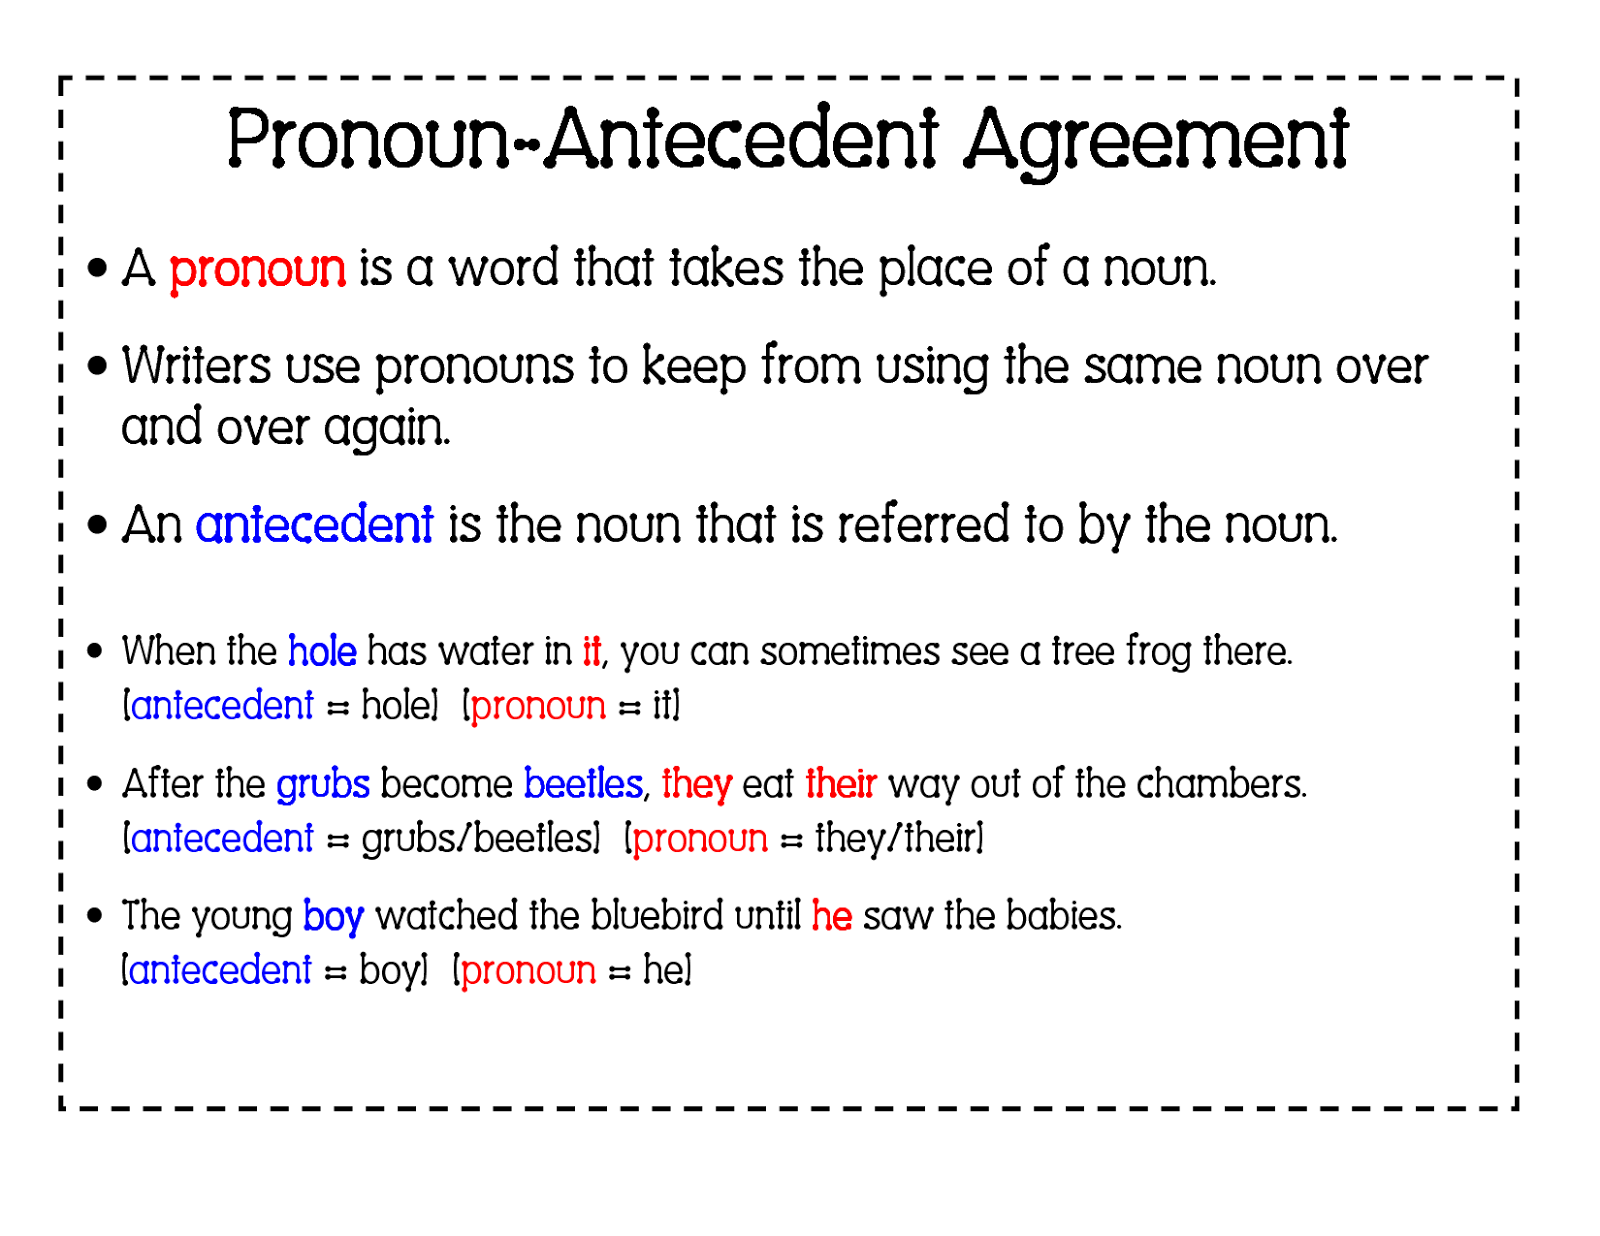 Worksheets Pronoun Antecedent Agreement Worksheets 6th grade english with mr t pronoun antecedent agreement part 2 review practice identifying pronouns antecedents socrative